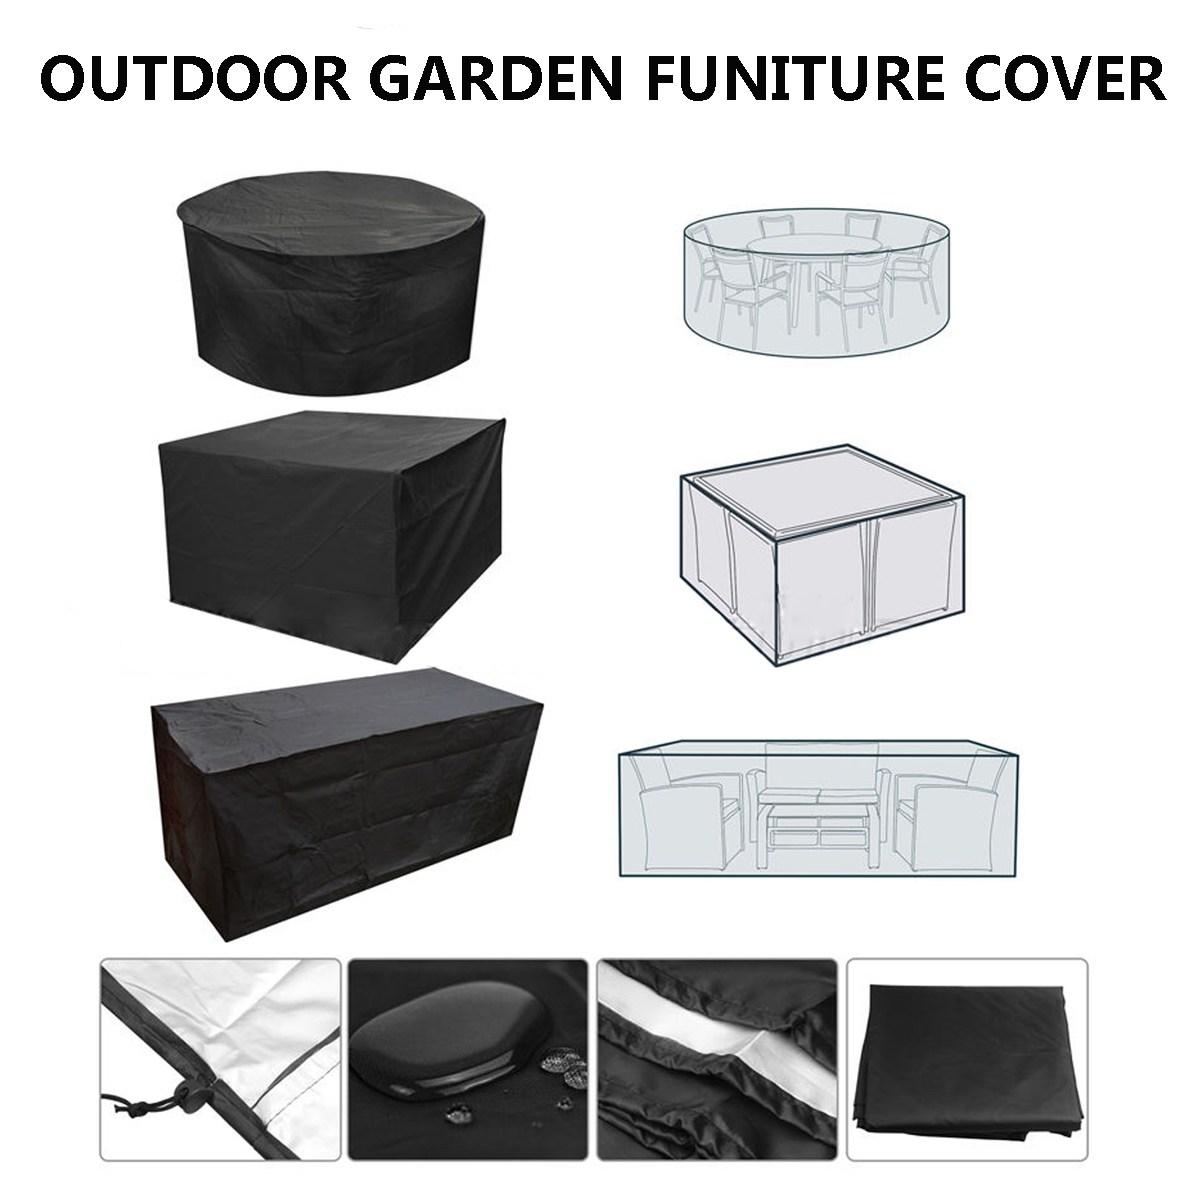 Black garden patio waterproof furniture cover set table bench cube black garden patio waterproof furniture cover set table bench cube outdoor tablecloth table runner 4 sizes rectangle round wedding napkin black paper workwithnaturefo